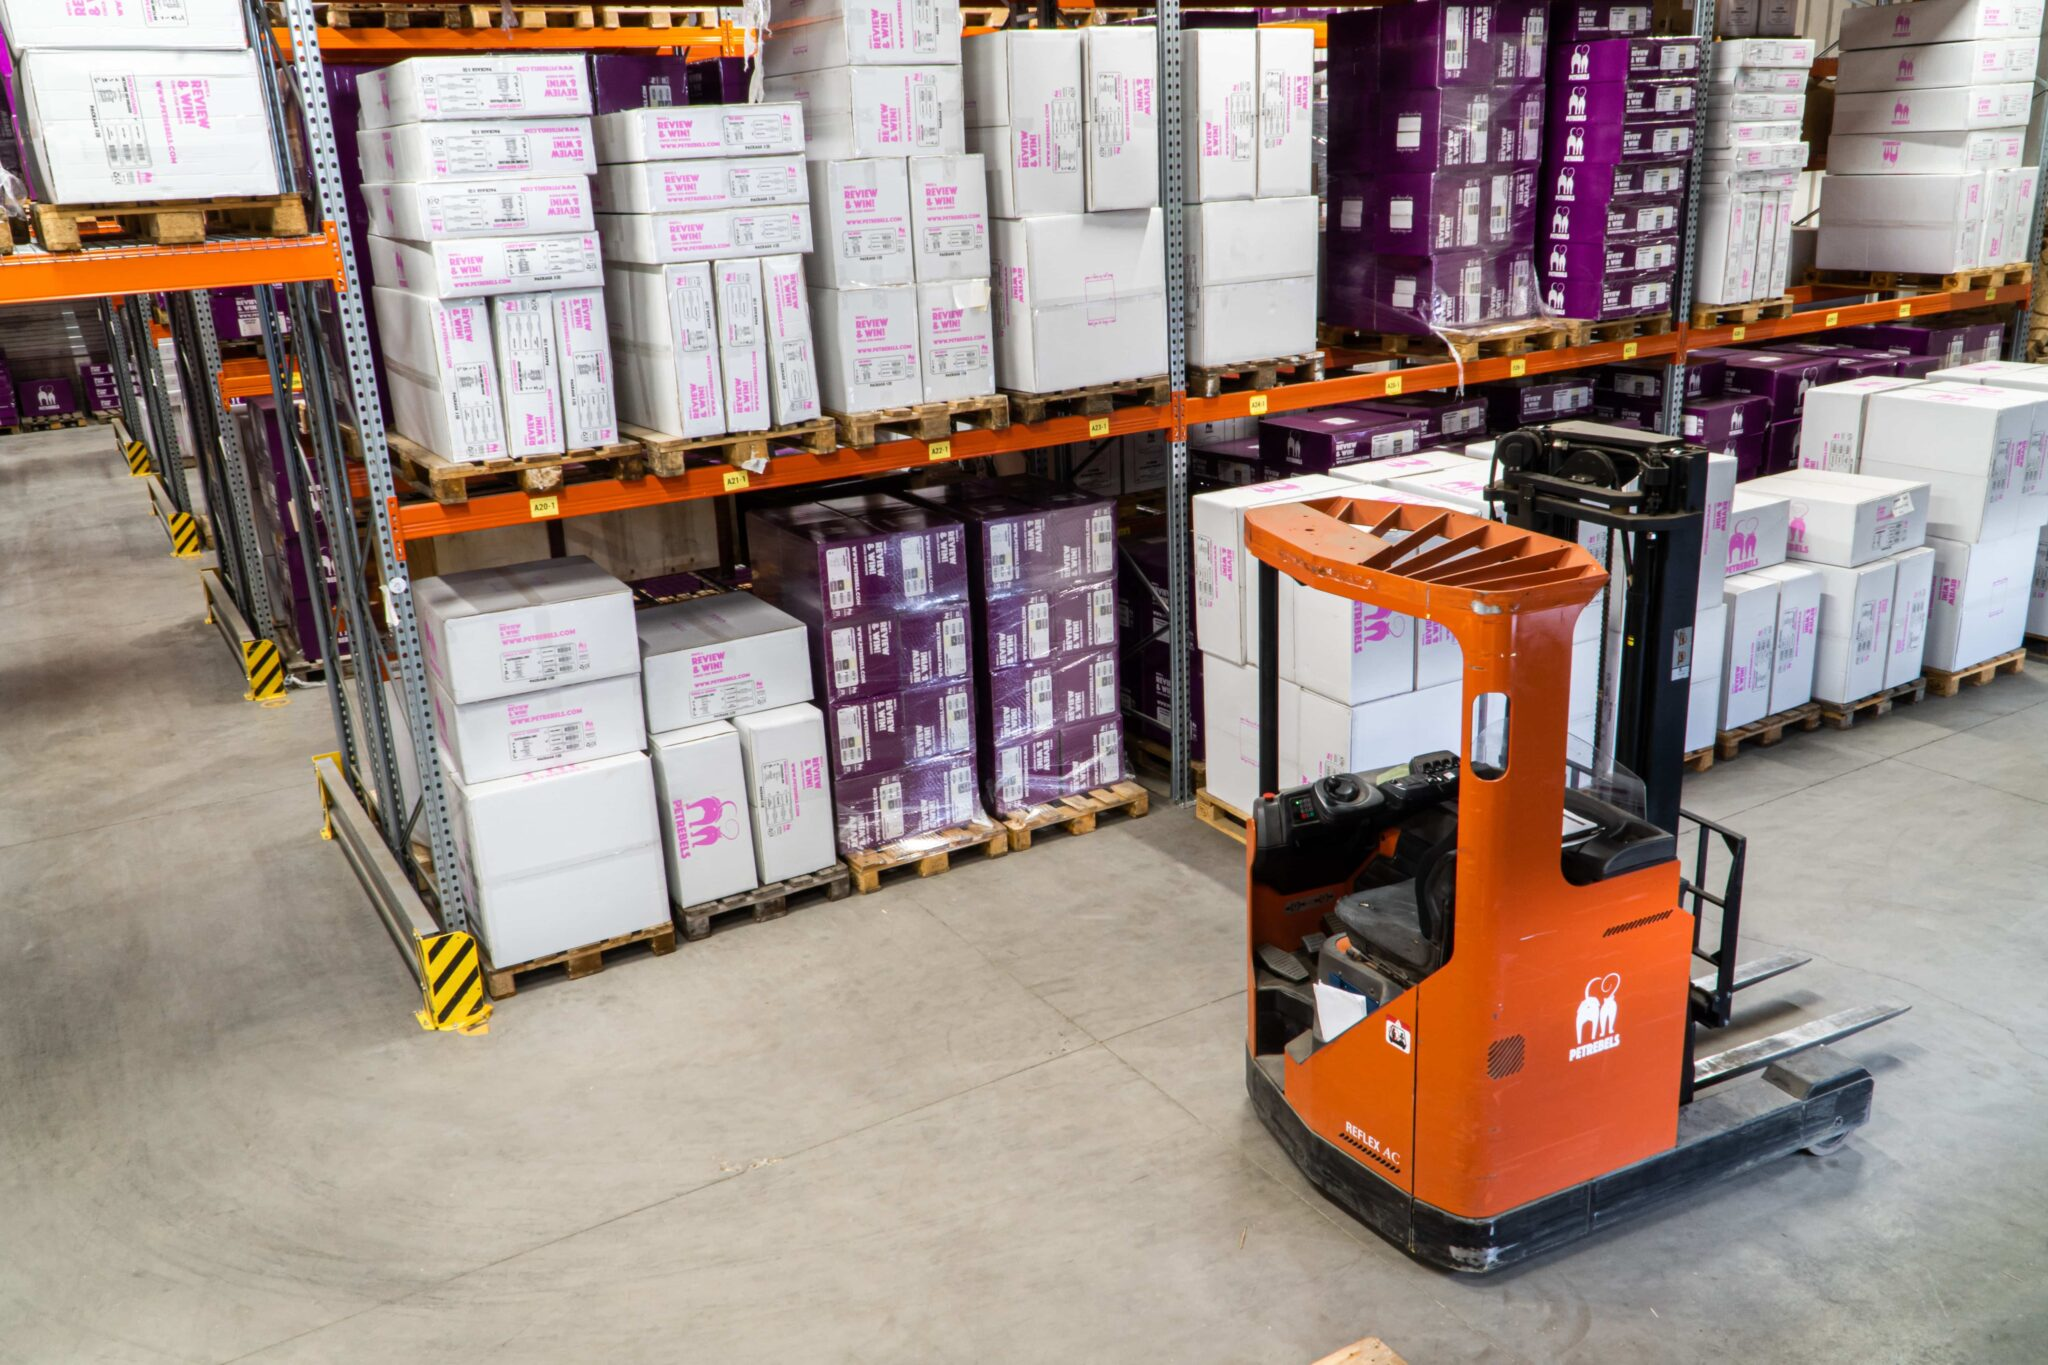 Importance of Inventory in Supply Chain Management